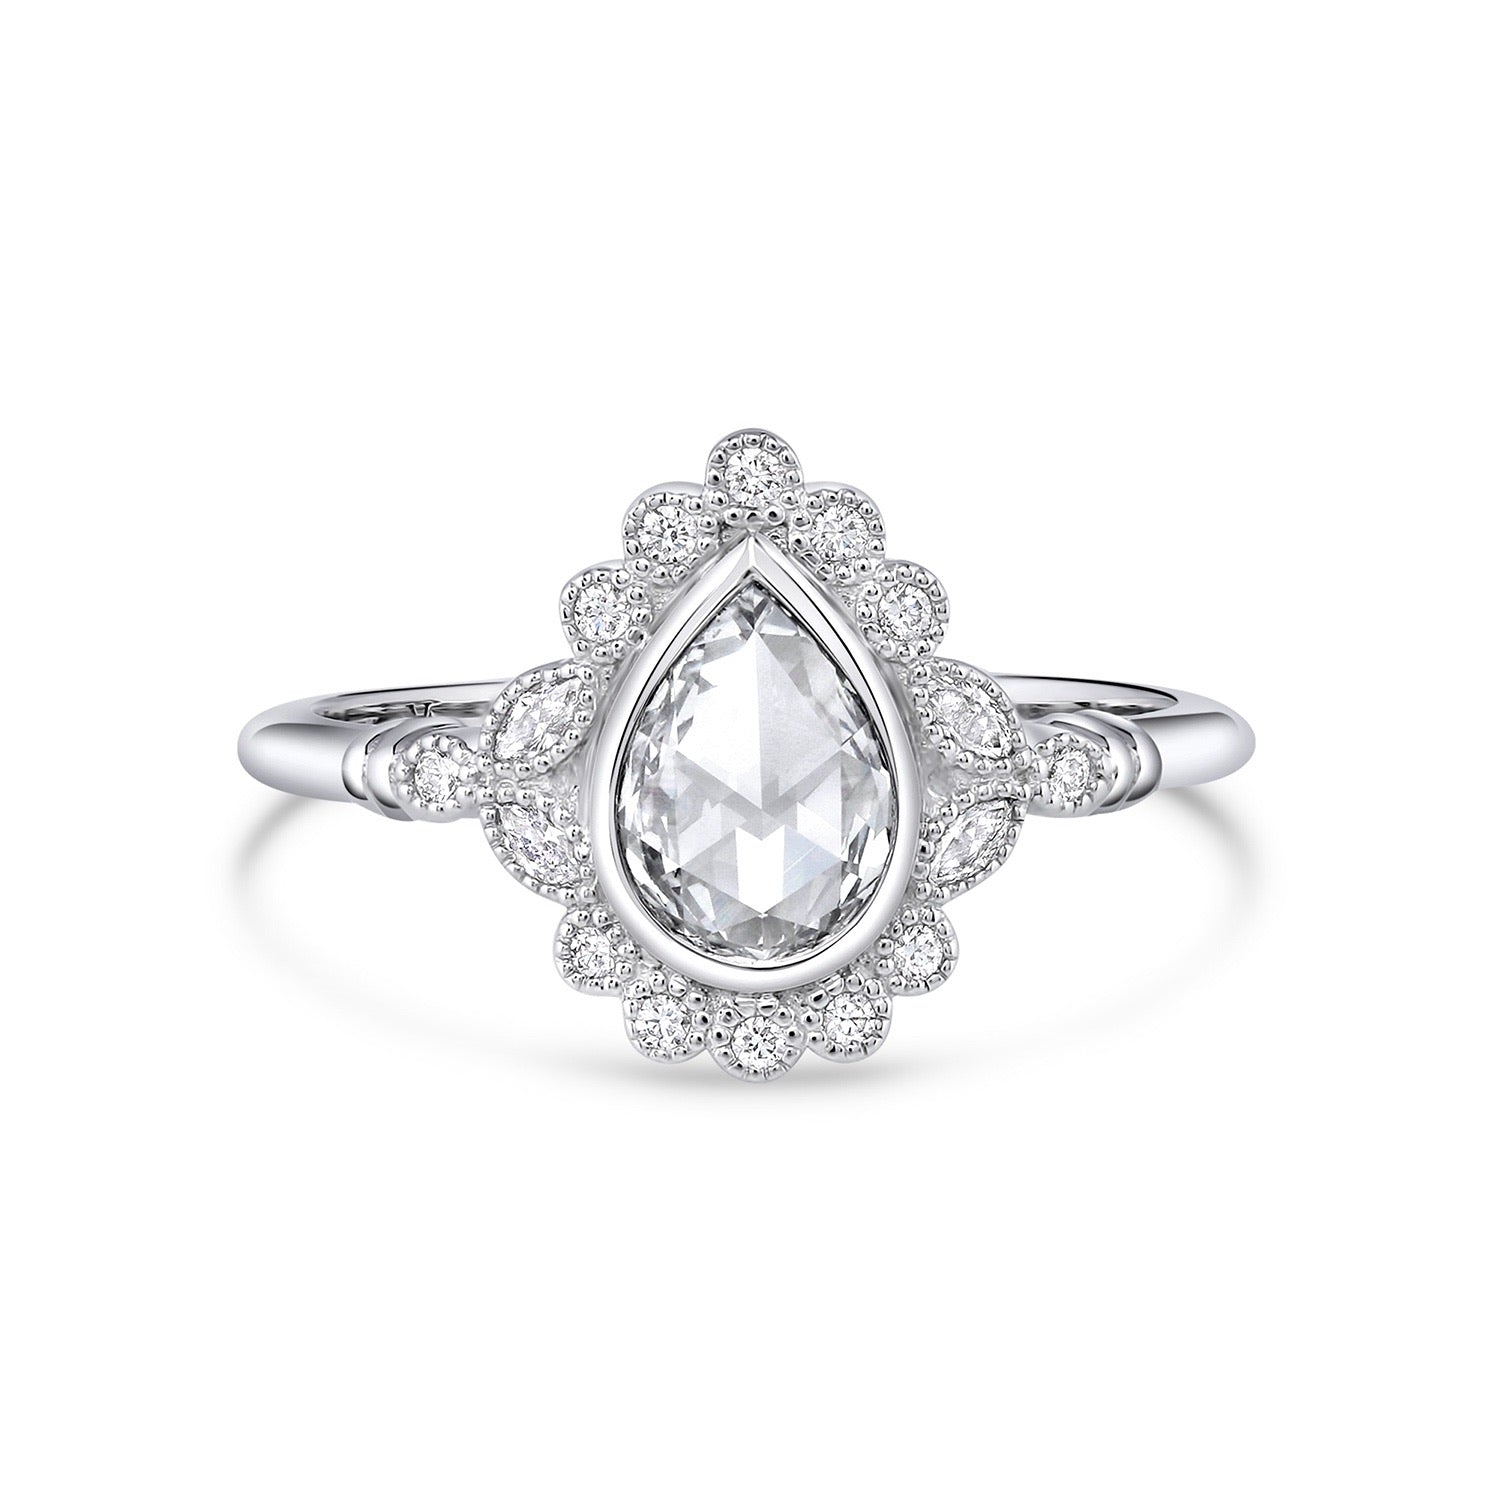 Everly | Pear Rose Cut Diamond Milgrain Bezel Engagement Ring | Platinum